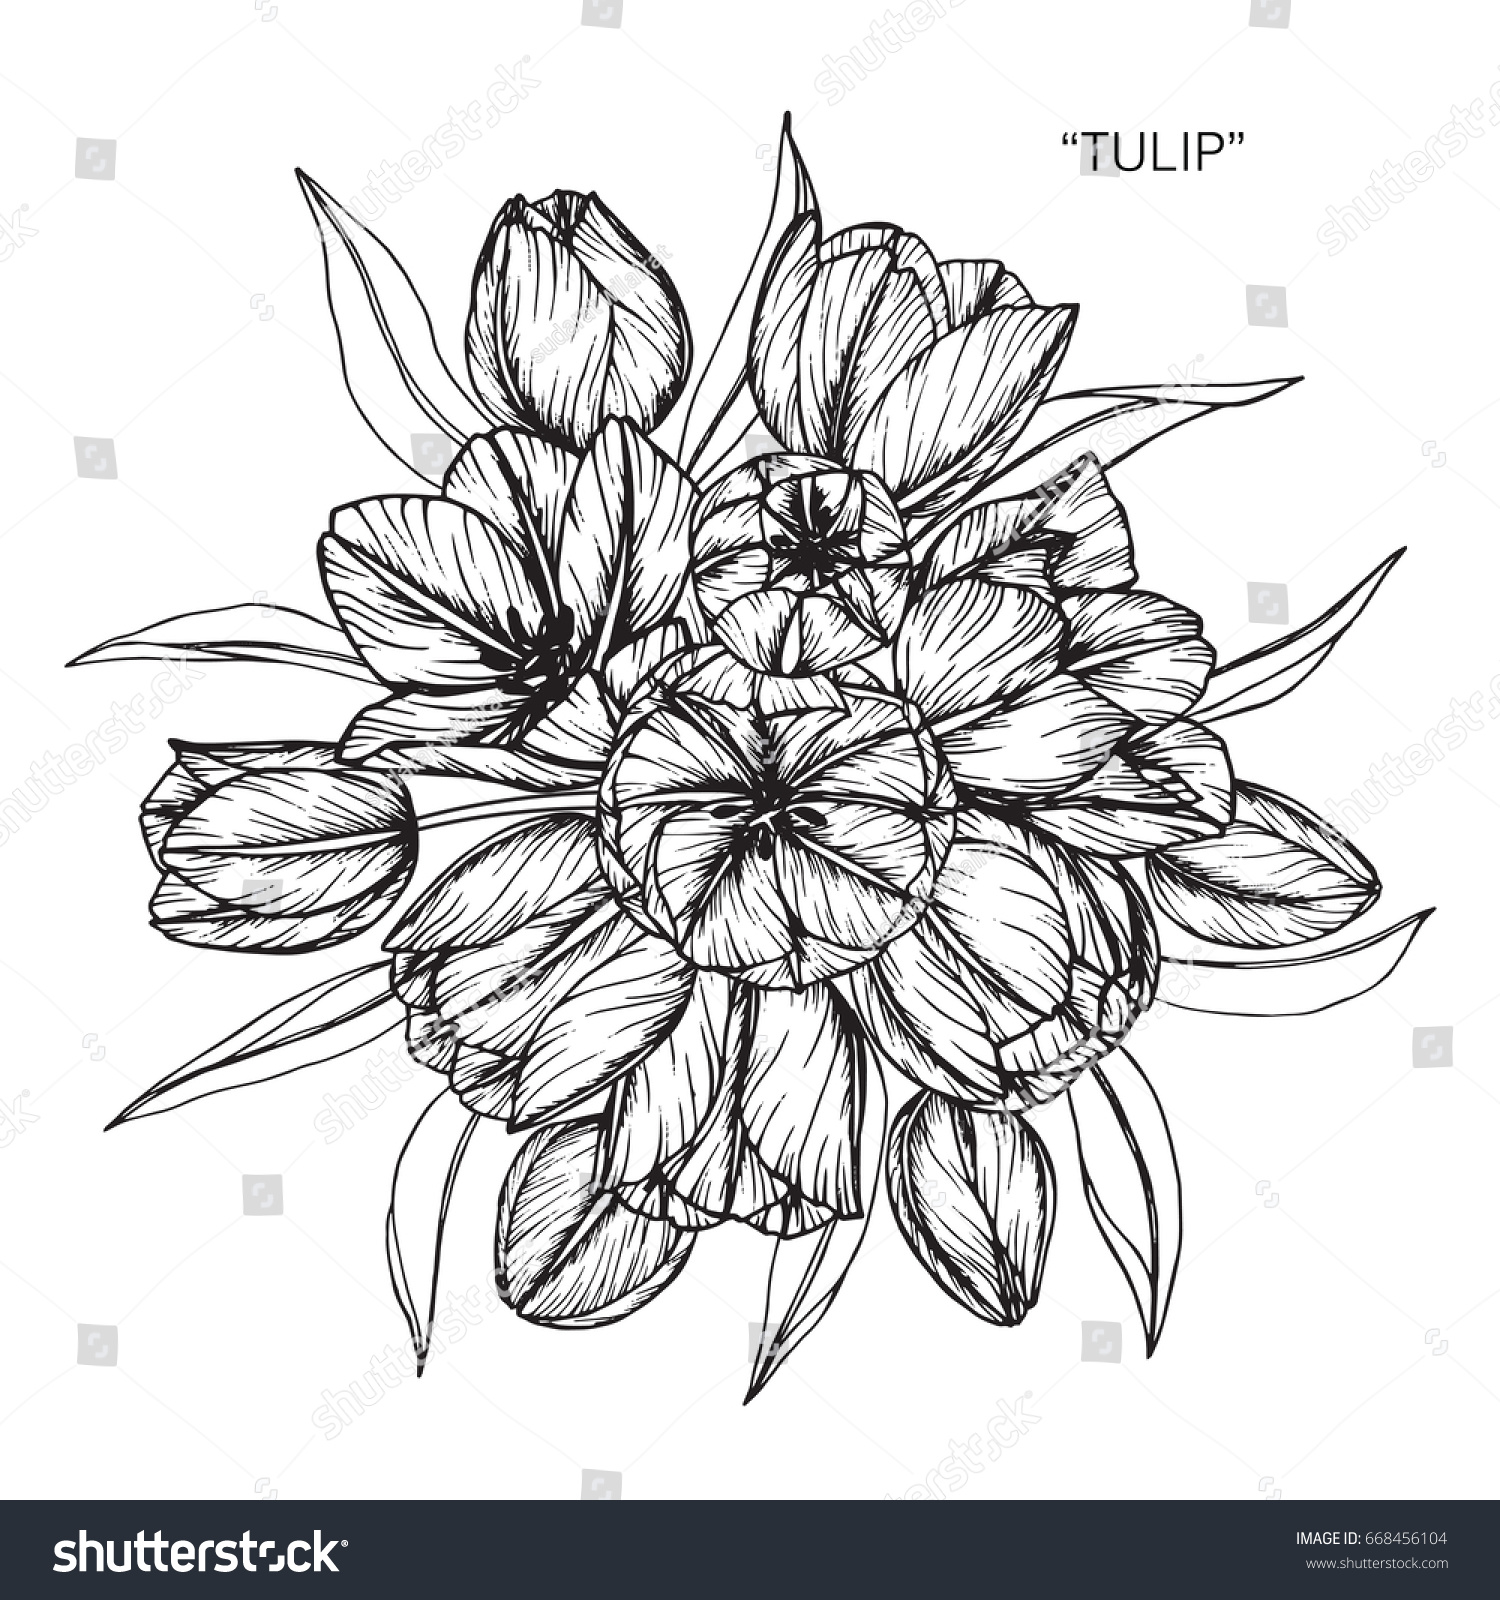 Bouquet Tulip Flowers Drawing Sketch Lineart Stock Vector Royalty